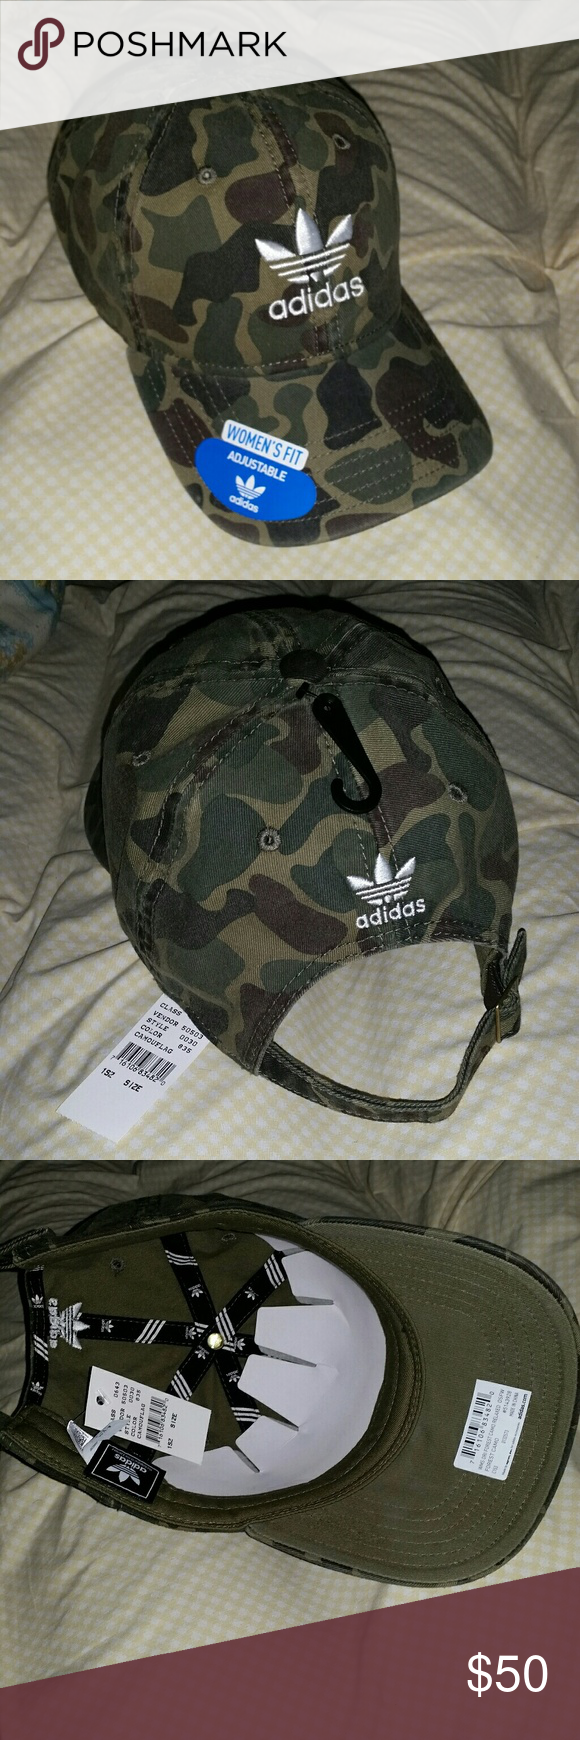 28bf407a4b230 Adidas Camo Dad Cap Brand new with tags Adidas adjustable cap TAGS  SUPREME  BAPE ADIDAS